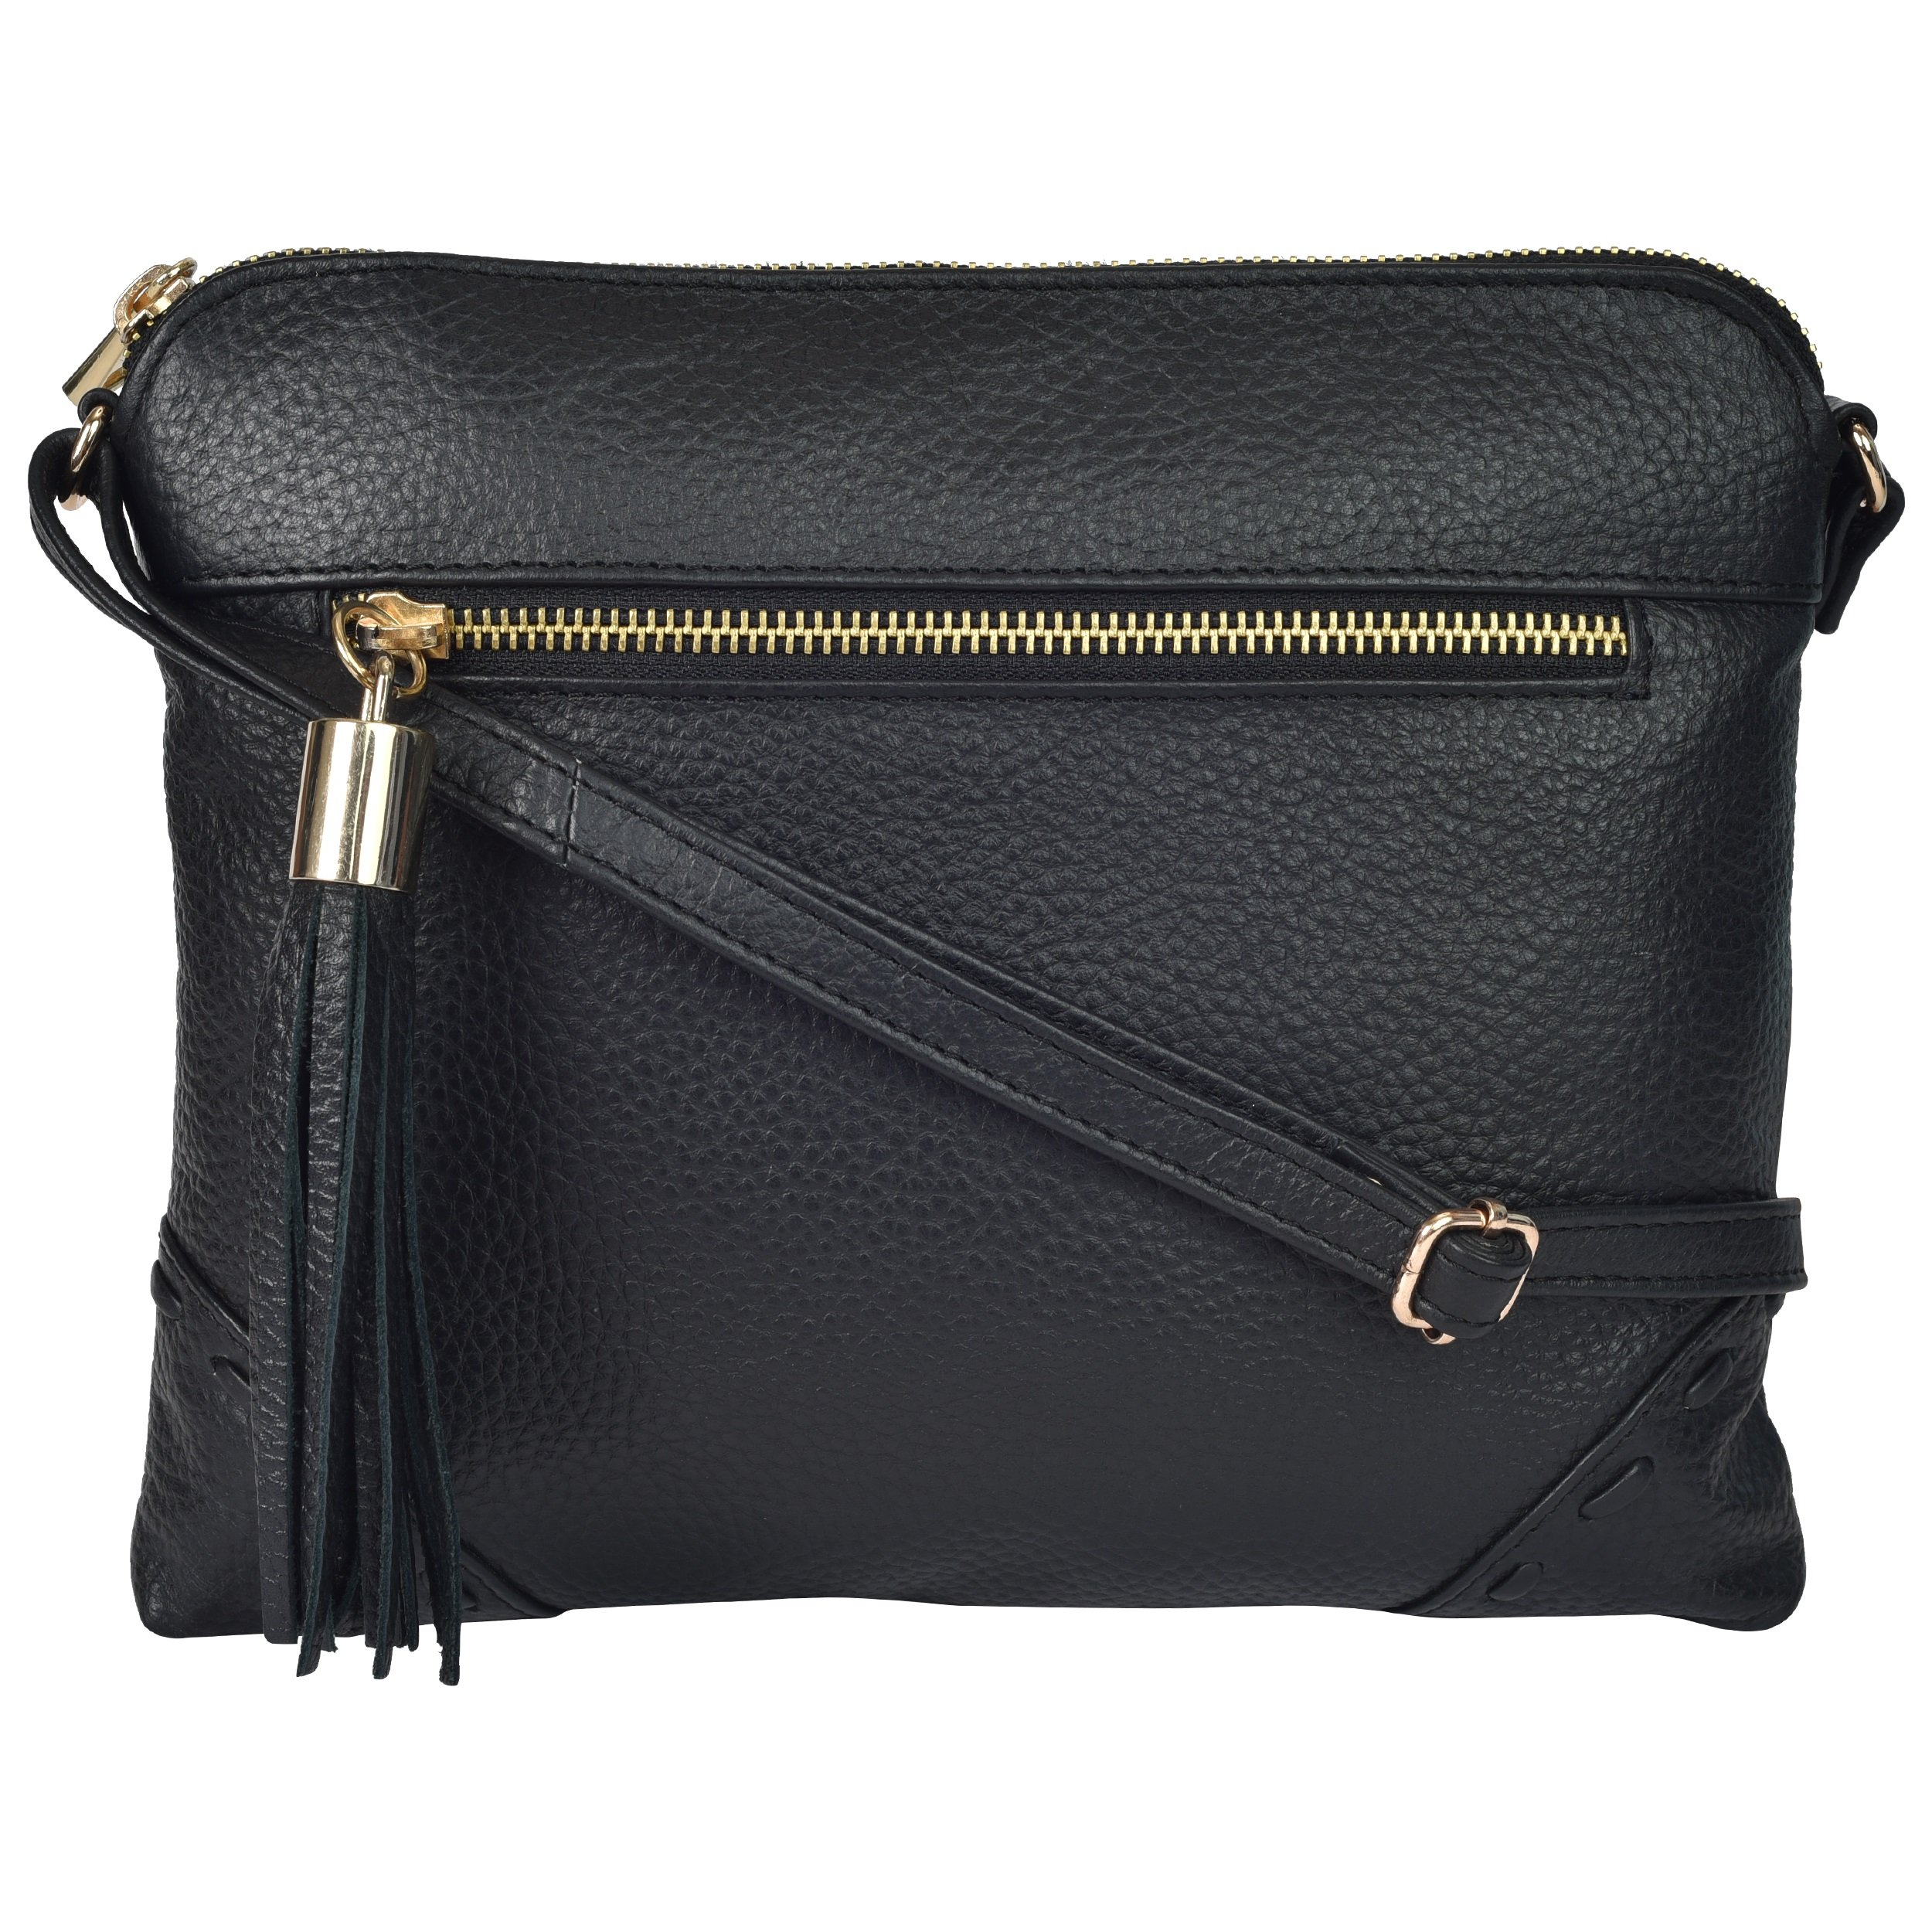 Leather Crossbody Purses and Bags for Women - Womens Crossover Handbags Over the Shoulder Travel Genuine Handmade Purse (Black Floater)